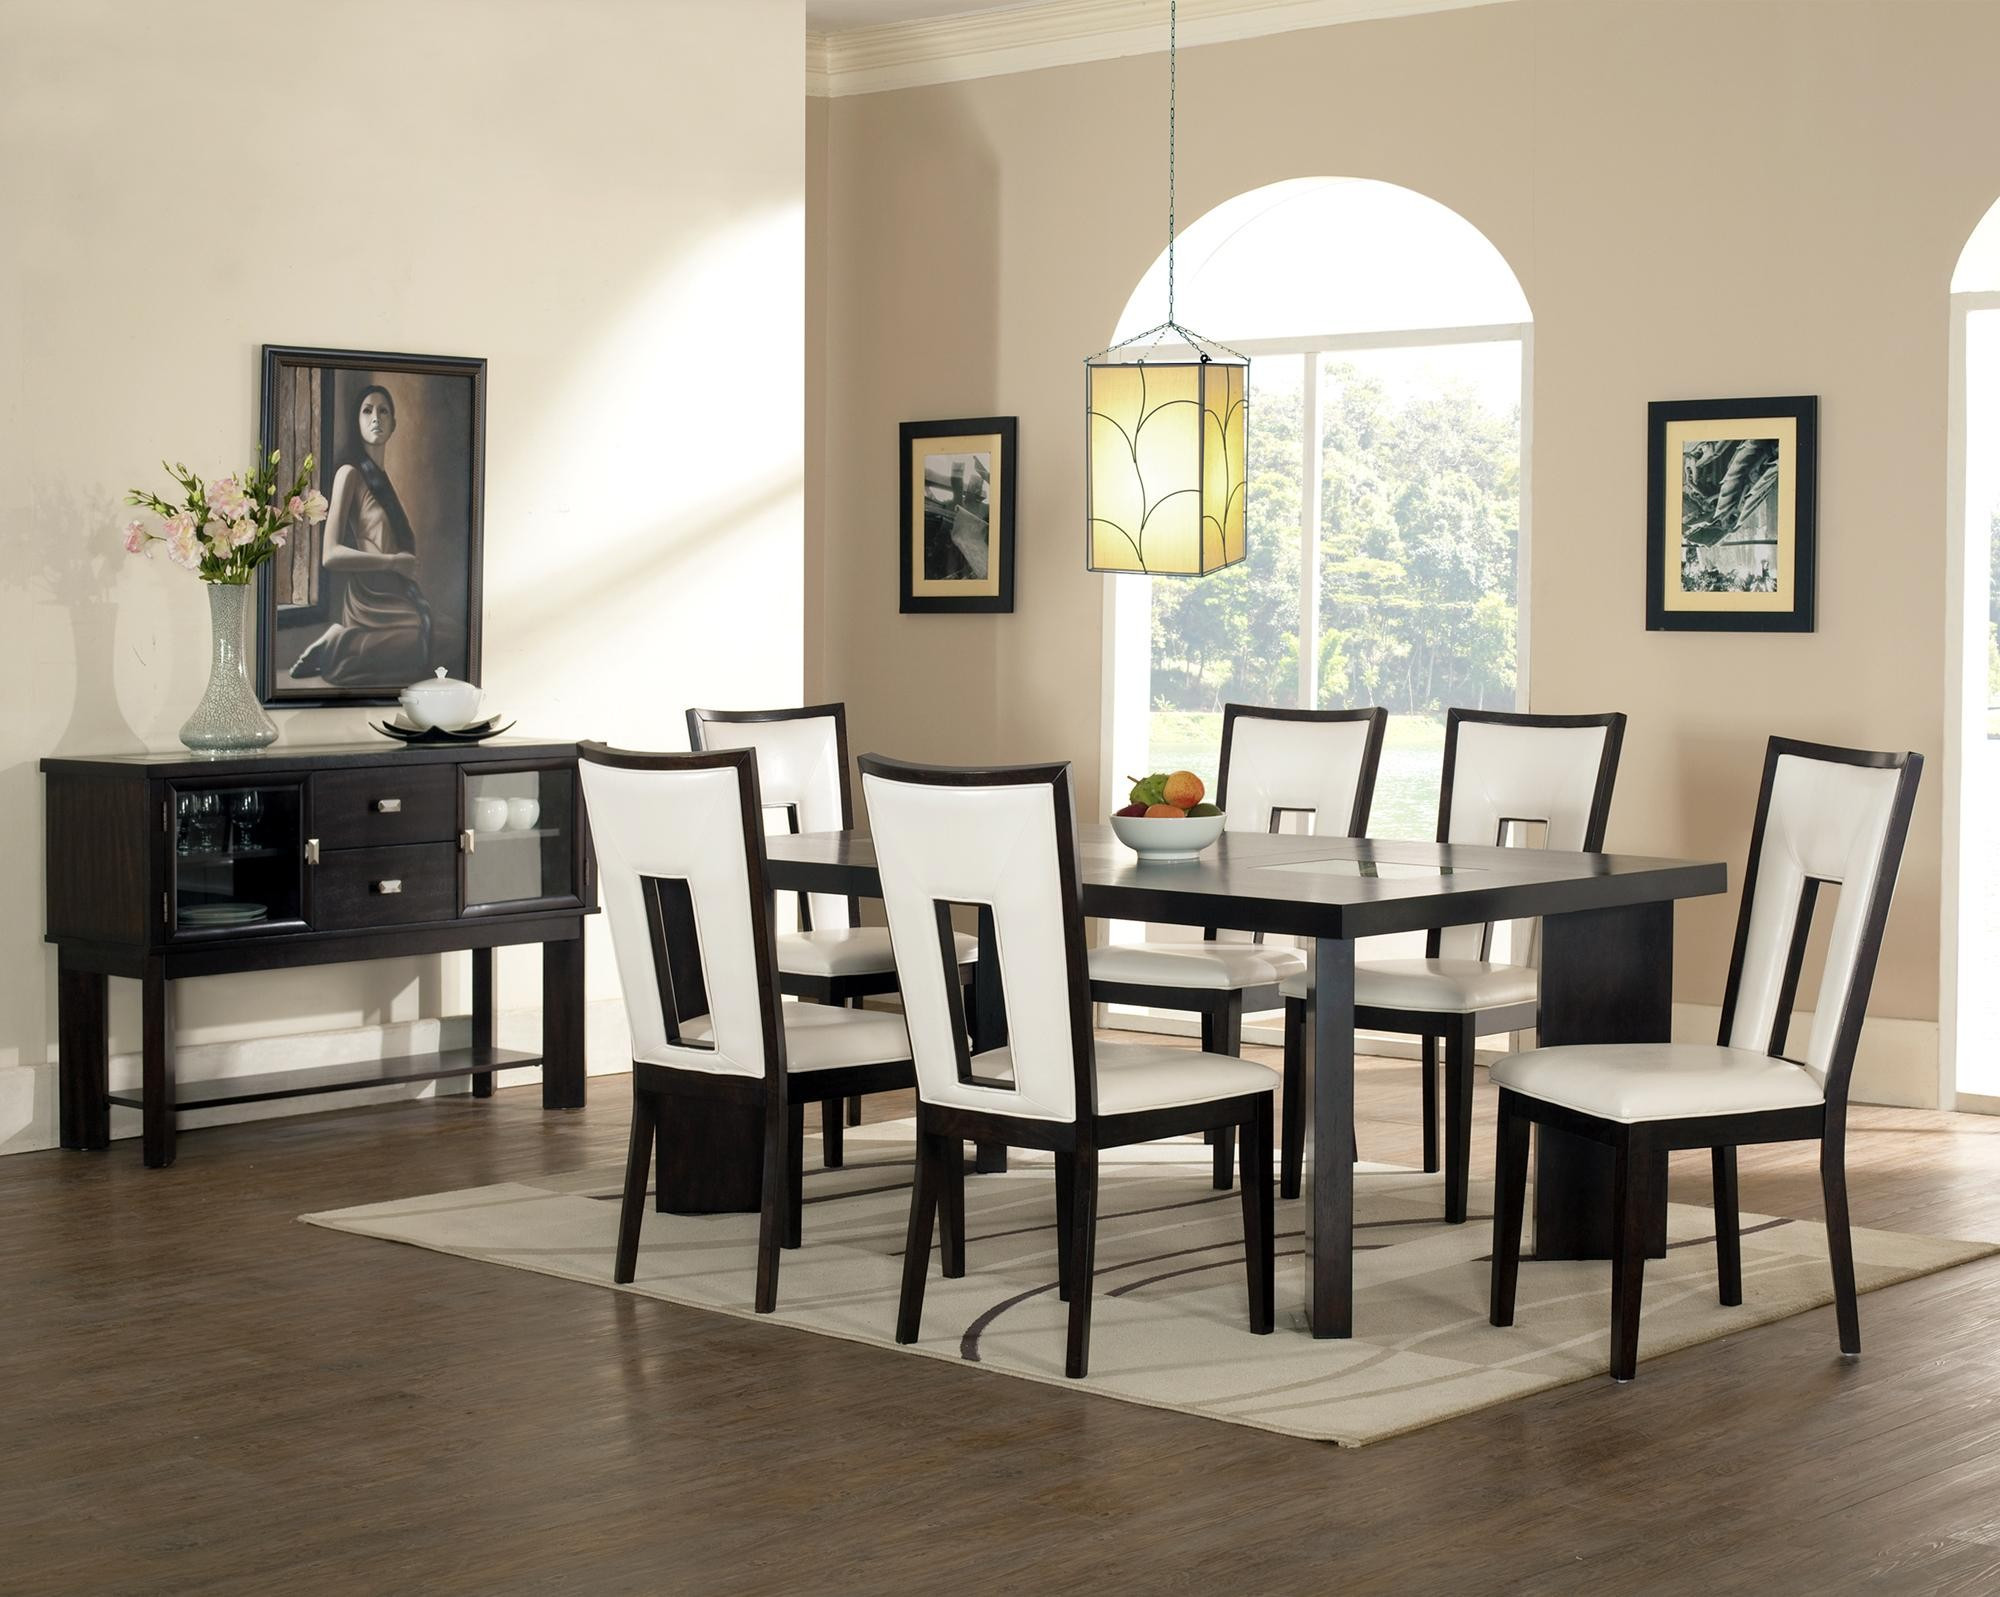 Best ideas about Dining Room Furniture . Save or Pin Contemporary Dining Room Sets for Beloved Family Traba Homes Now.